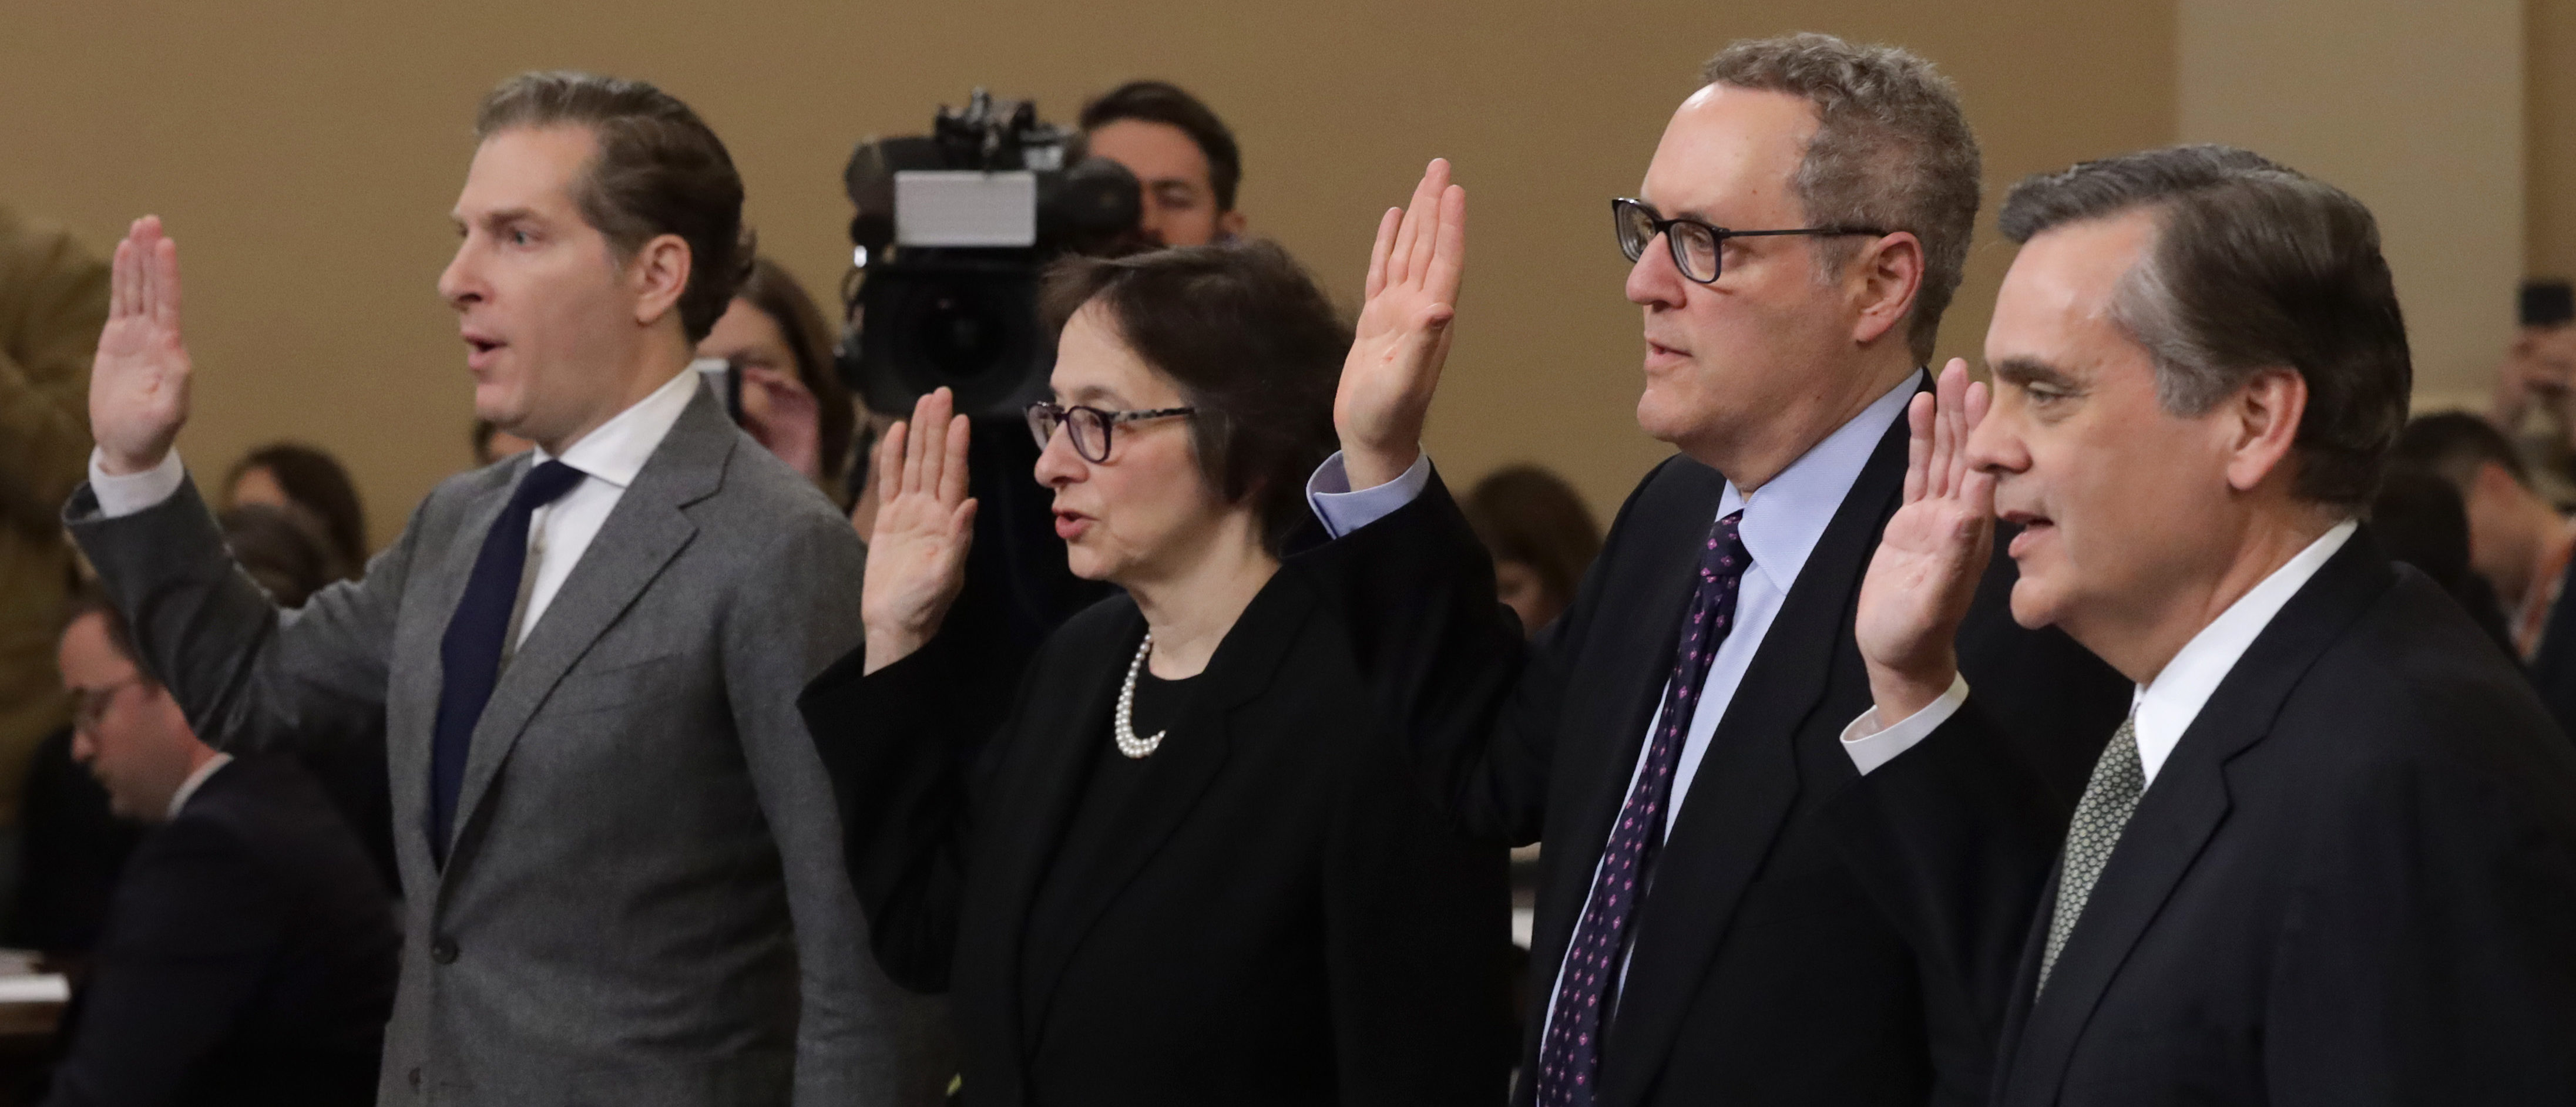 Constitutional scholars (L-R) Noah Feldman of Harvard University, Pamela Karlan of Stanford University, Michael Gerhardt of the University of North Carolina, and Jonathan Turley of George Washington University are sworn in prior to testifying before the House Judiciary Committee in the Longworth House Office Building on Capitol Hill December 4, 2019 in Washington, DC. This is the first hearing held by the House Judiciary Committee in the impeachment inquiry against U.S. President Donald Trump, whom House Democrats say held back military aid for Ukraine while demanding it investigate his political rivals. The Judiciary Committee will decide whether to draft official articles of impeachment against President Trump to be voted on by the full House of Representatives. (Photo by Alex Wong/Getty Images)